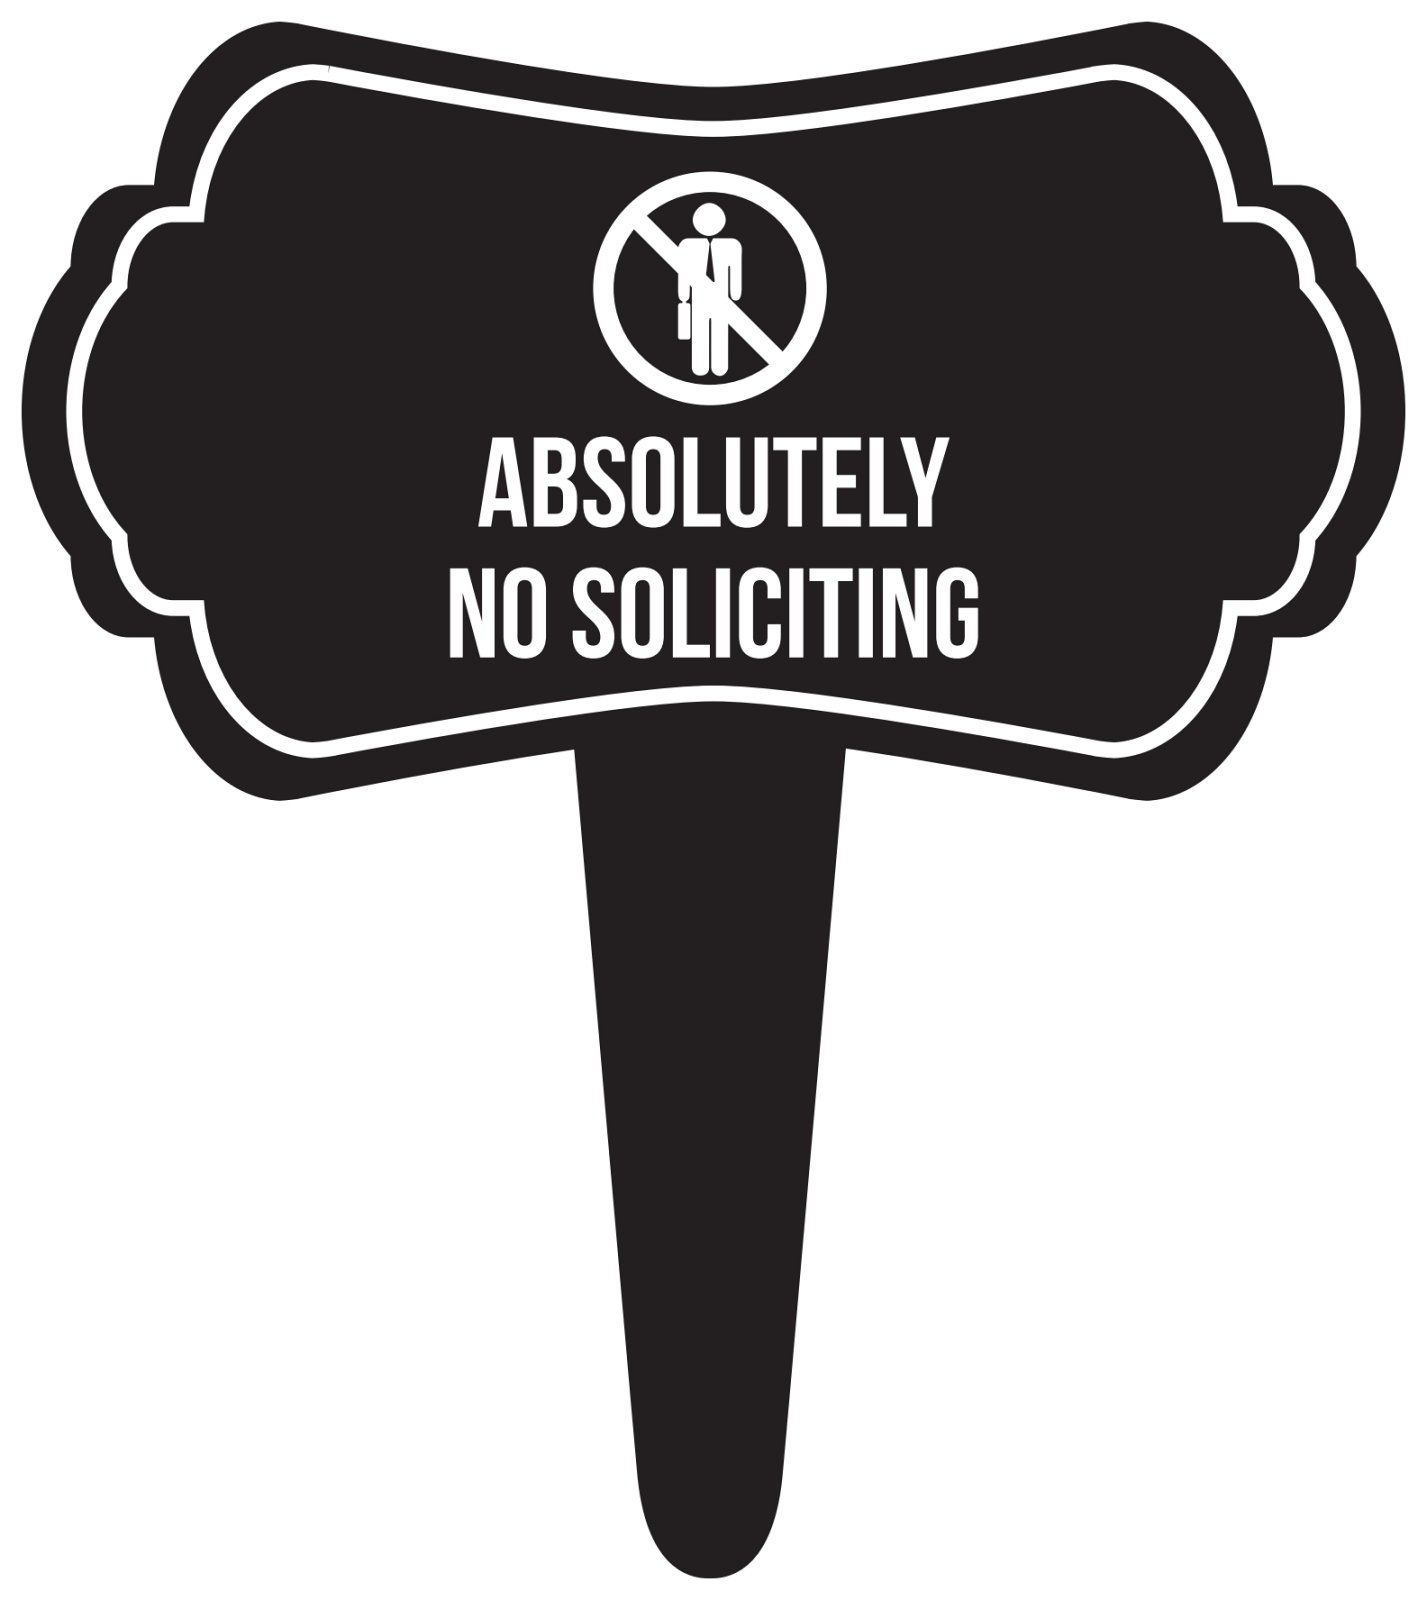 iCandy Combat Absolutely No Soliciting Home Yard Lawn Sign, Black, 16x18, Single